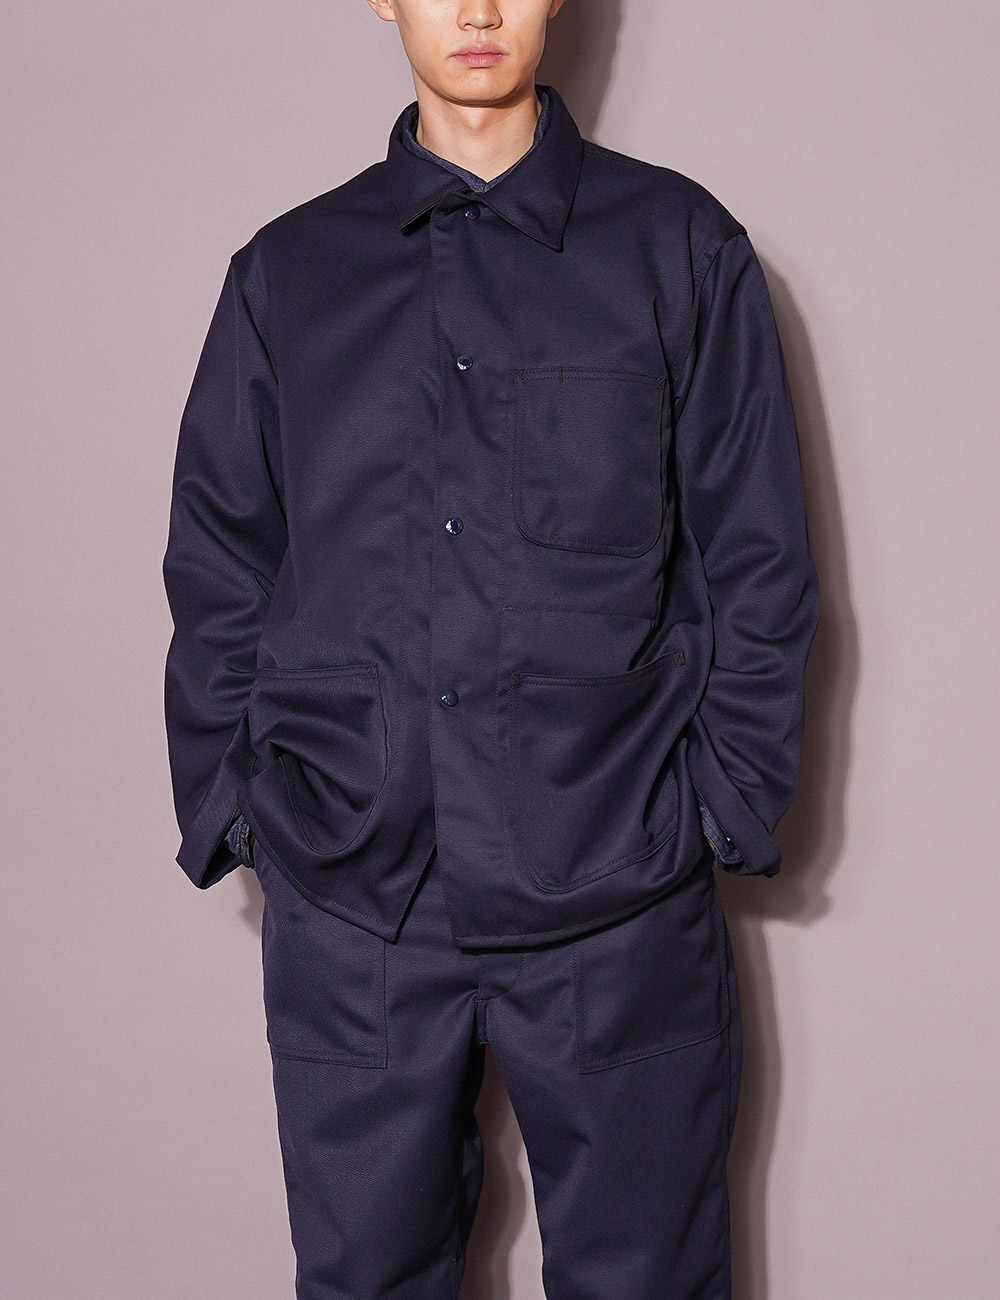 Engineered Garments WORKDAY : UTILITY JACKET (DK.NAVY)